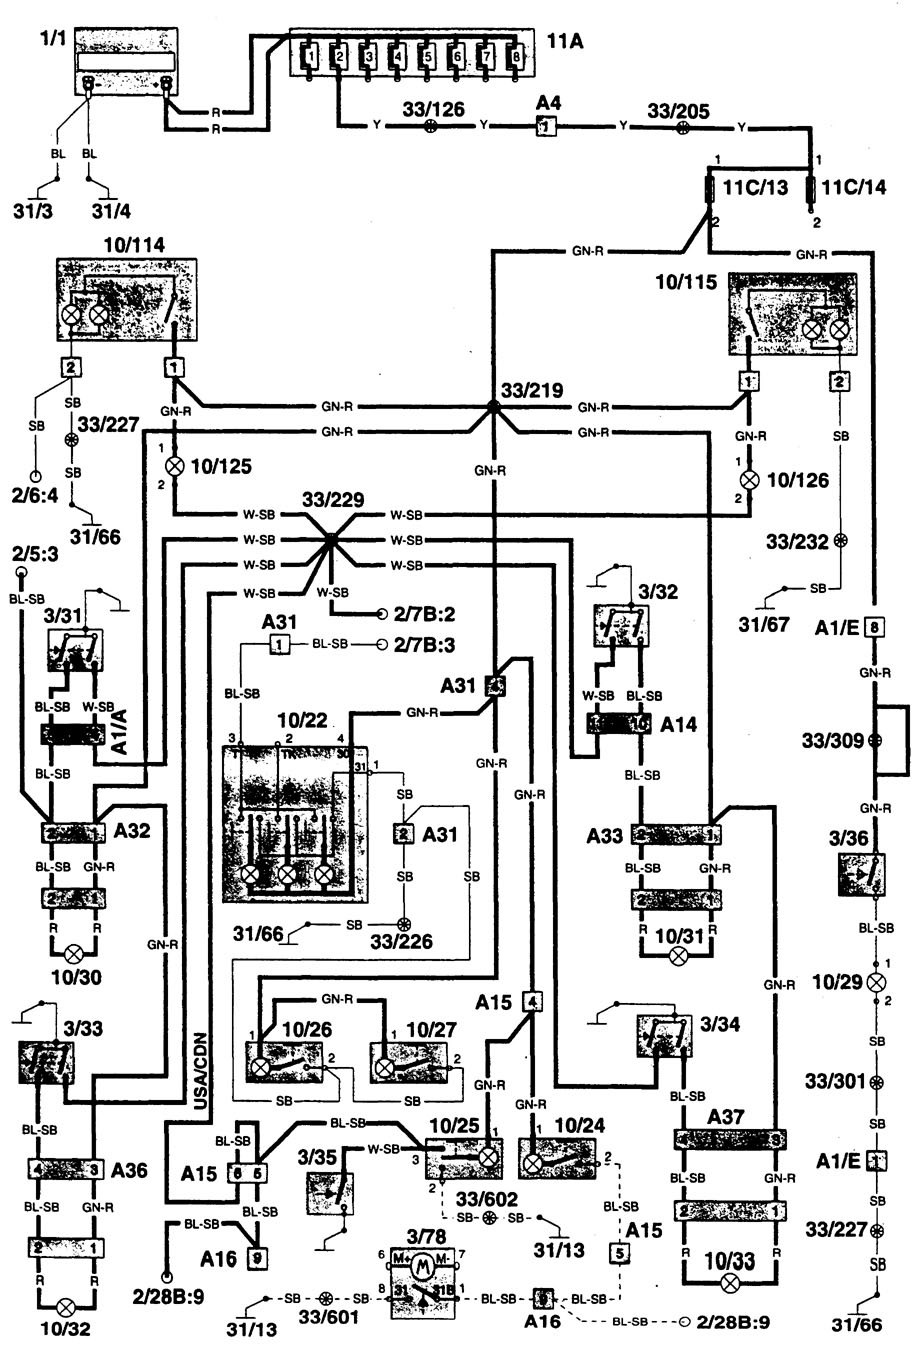 Volvo 960 (1996) - wiring diagrams - interior lighting - Carknowledge.info | Volvo 960 Wiring Diagram |  | Carknowledge.info